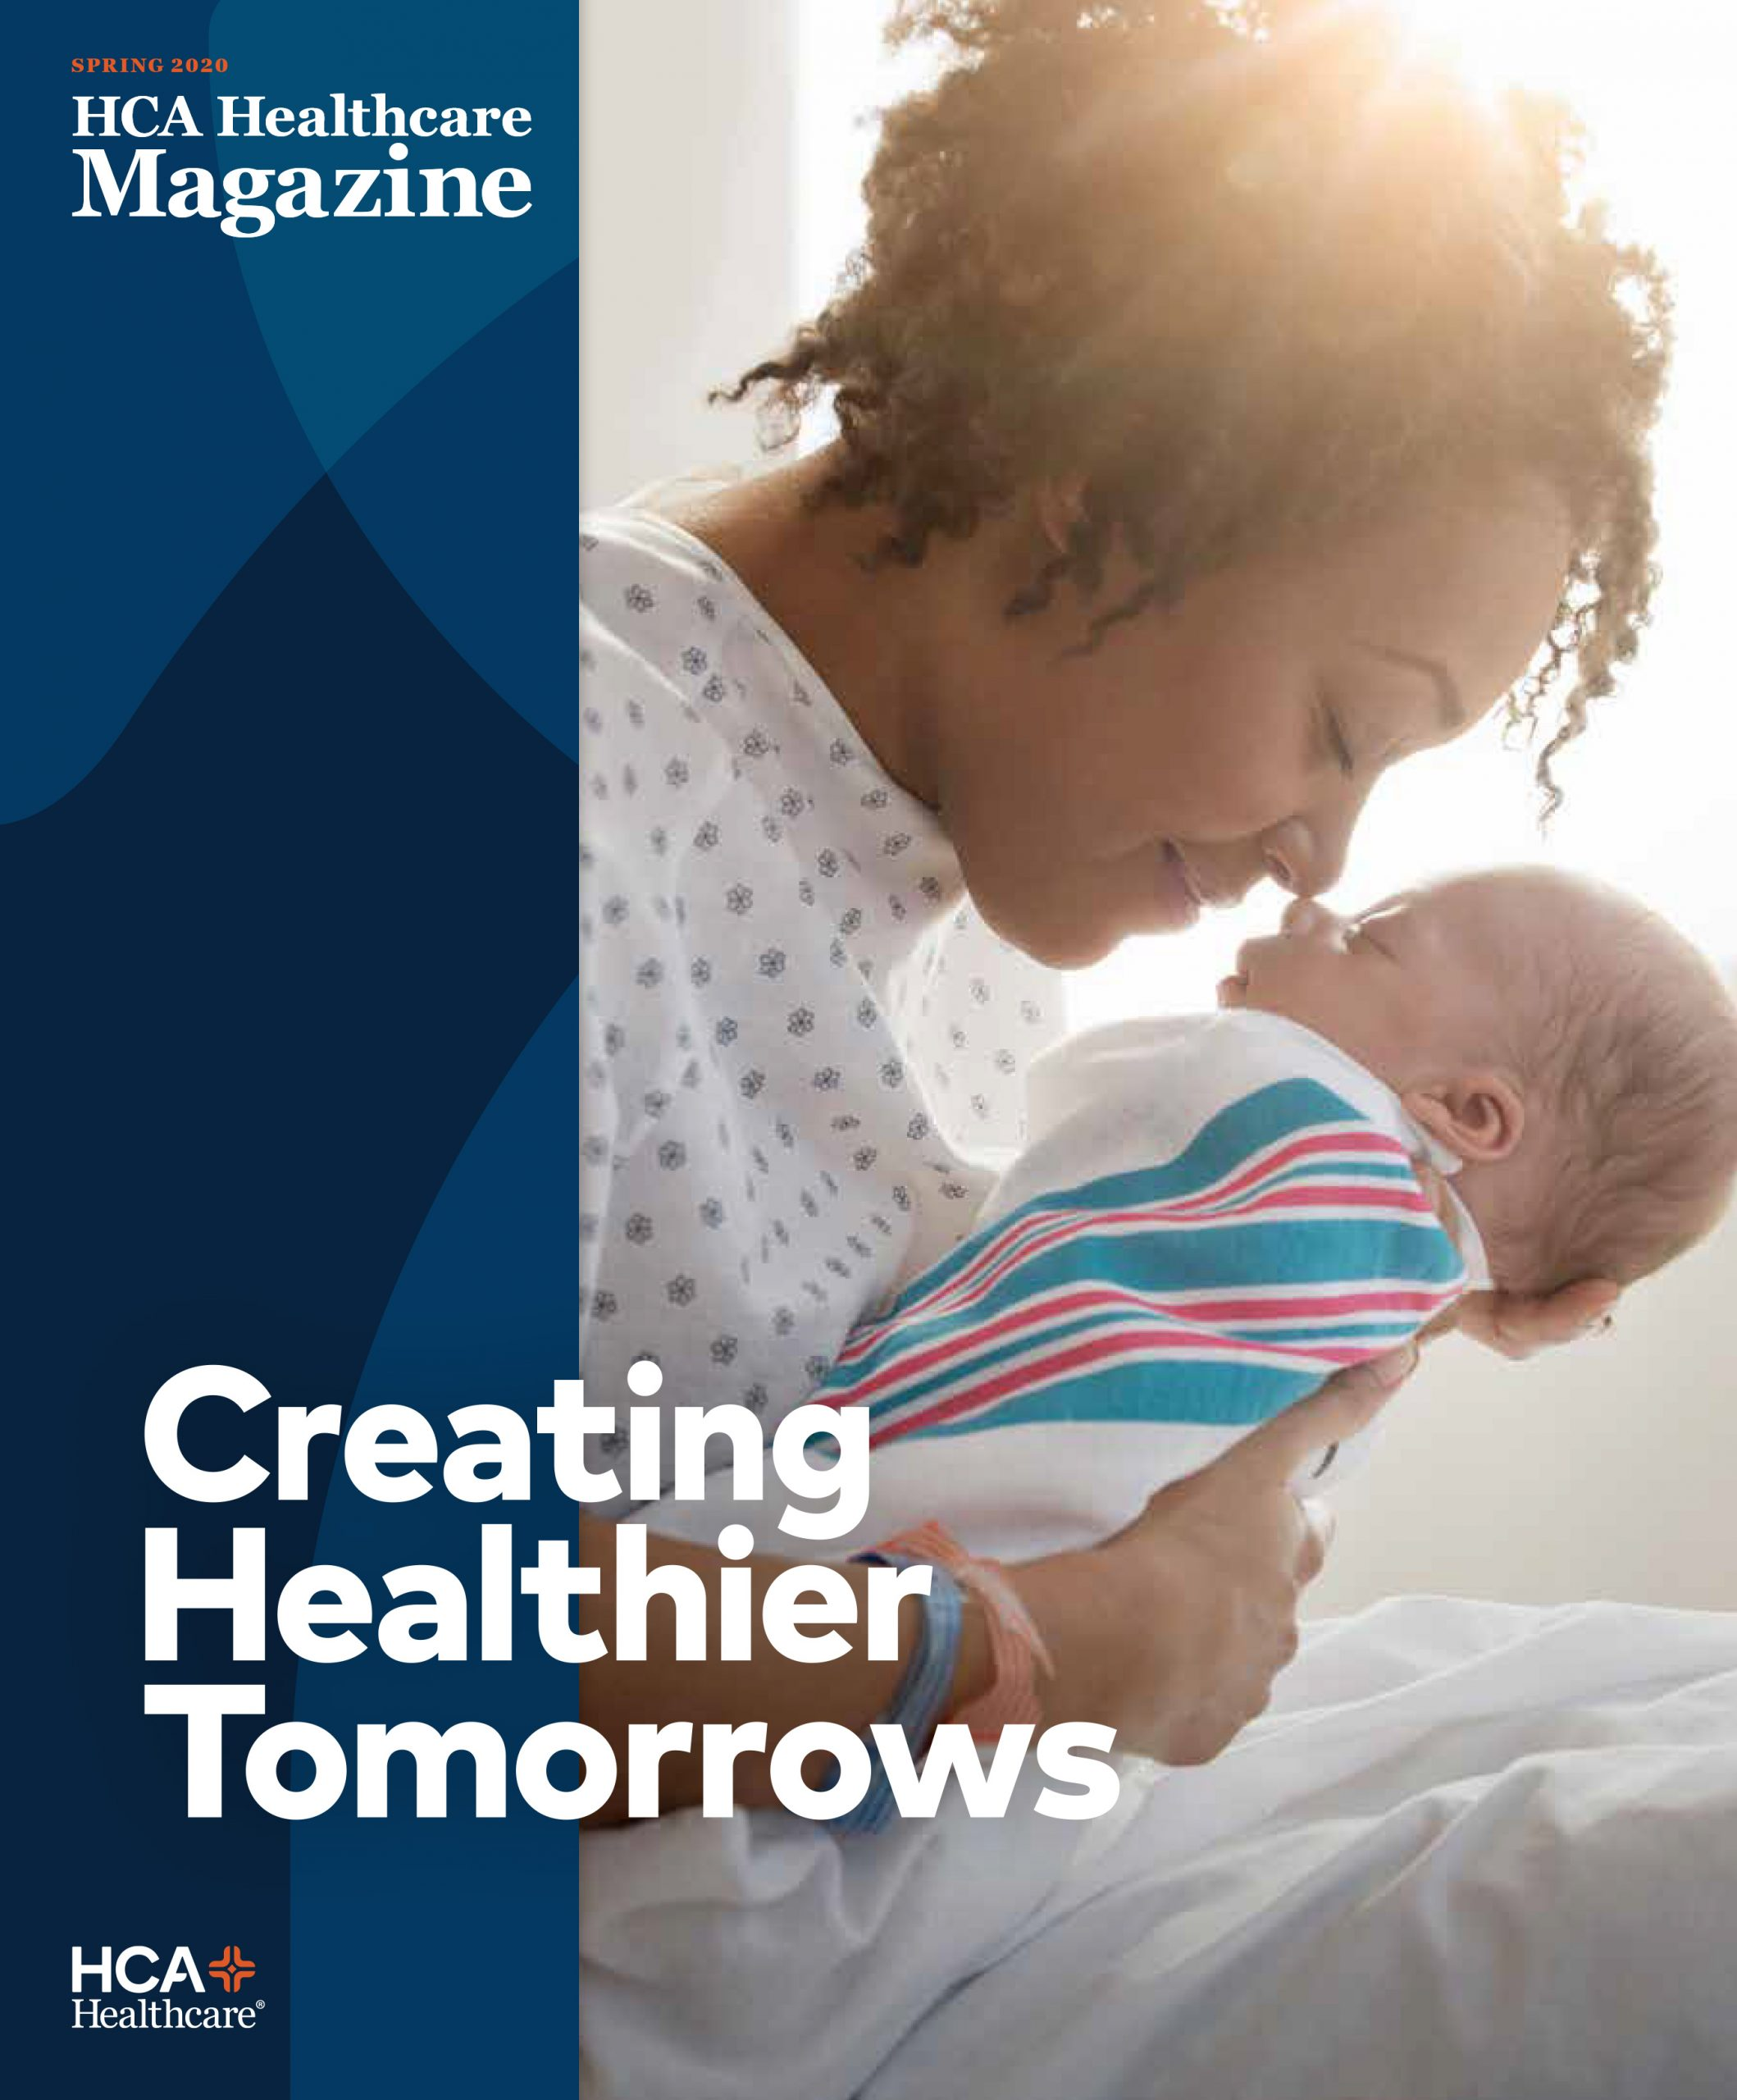 cover image of Spring 2020 issue of HCA magazine of a new mother holding a baby